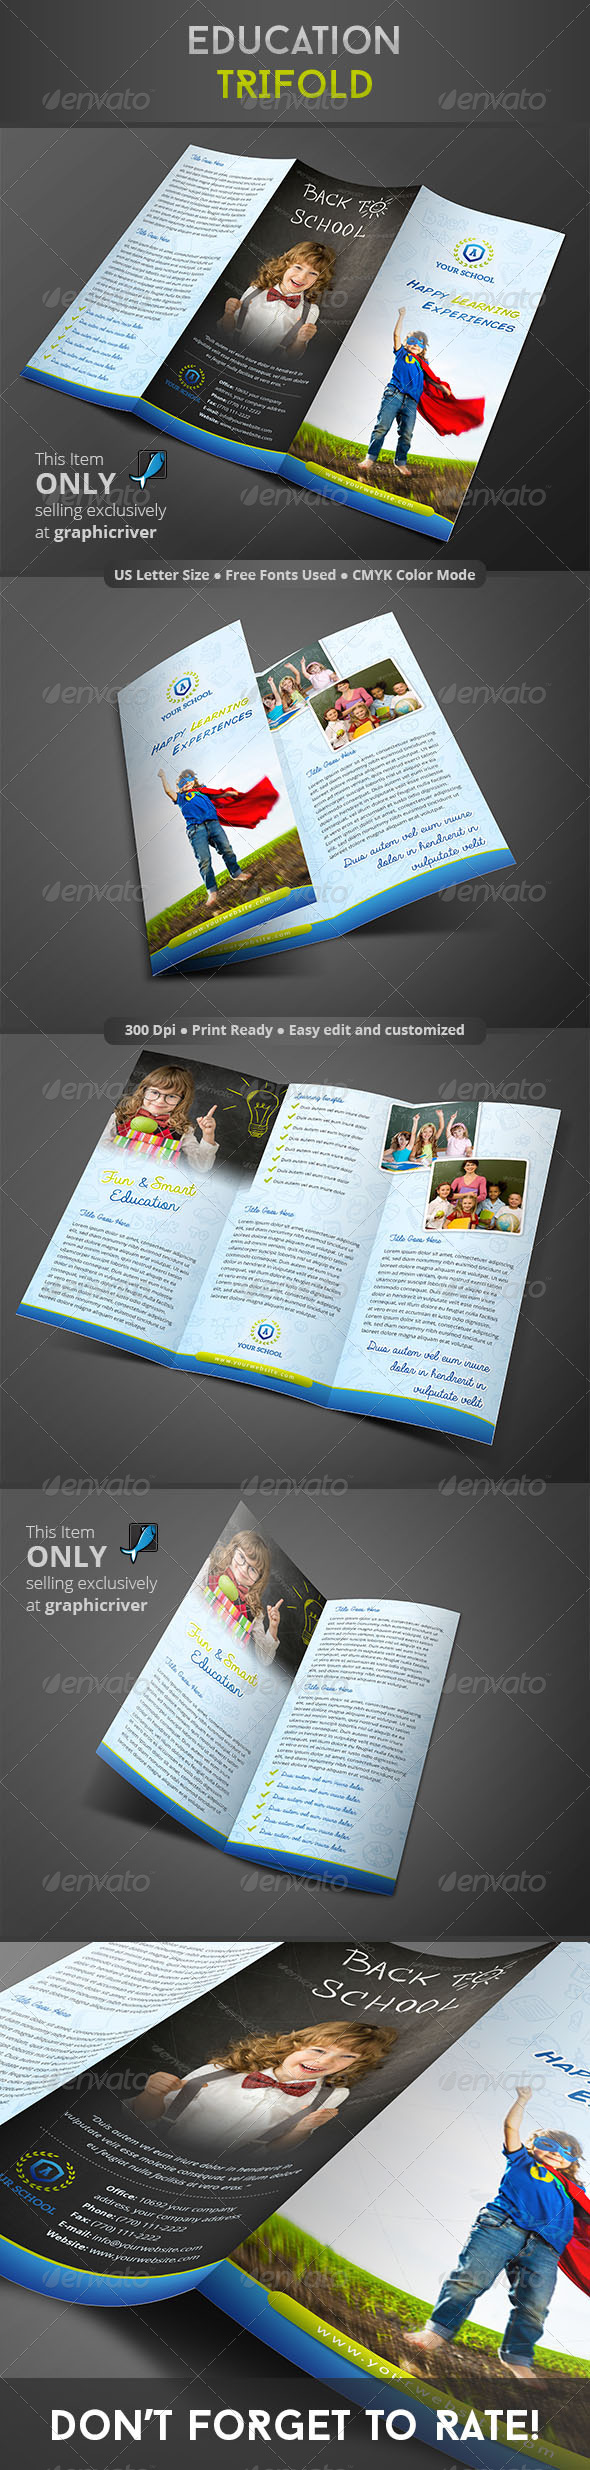 GraphicRiver Education Trifold 8373208